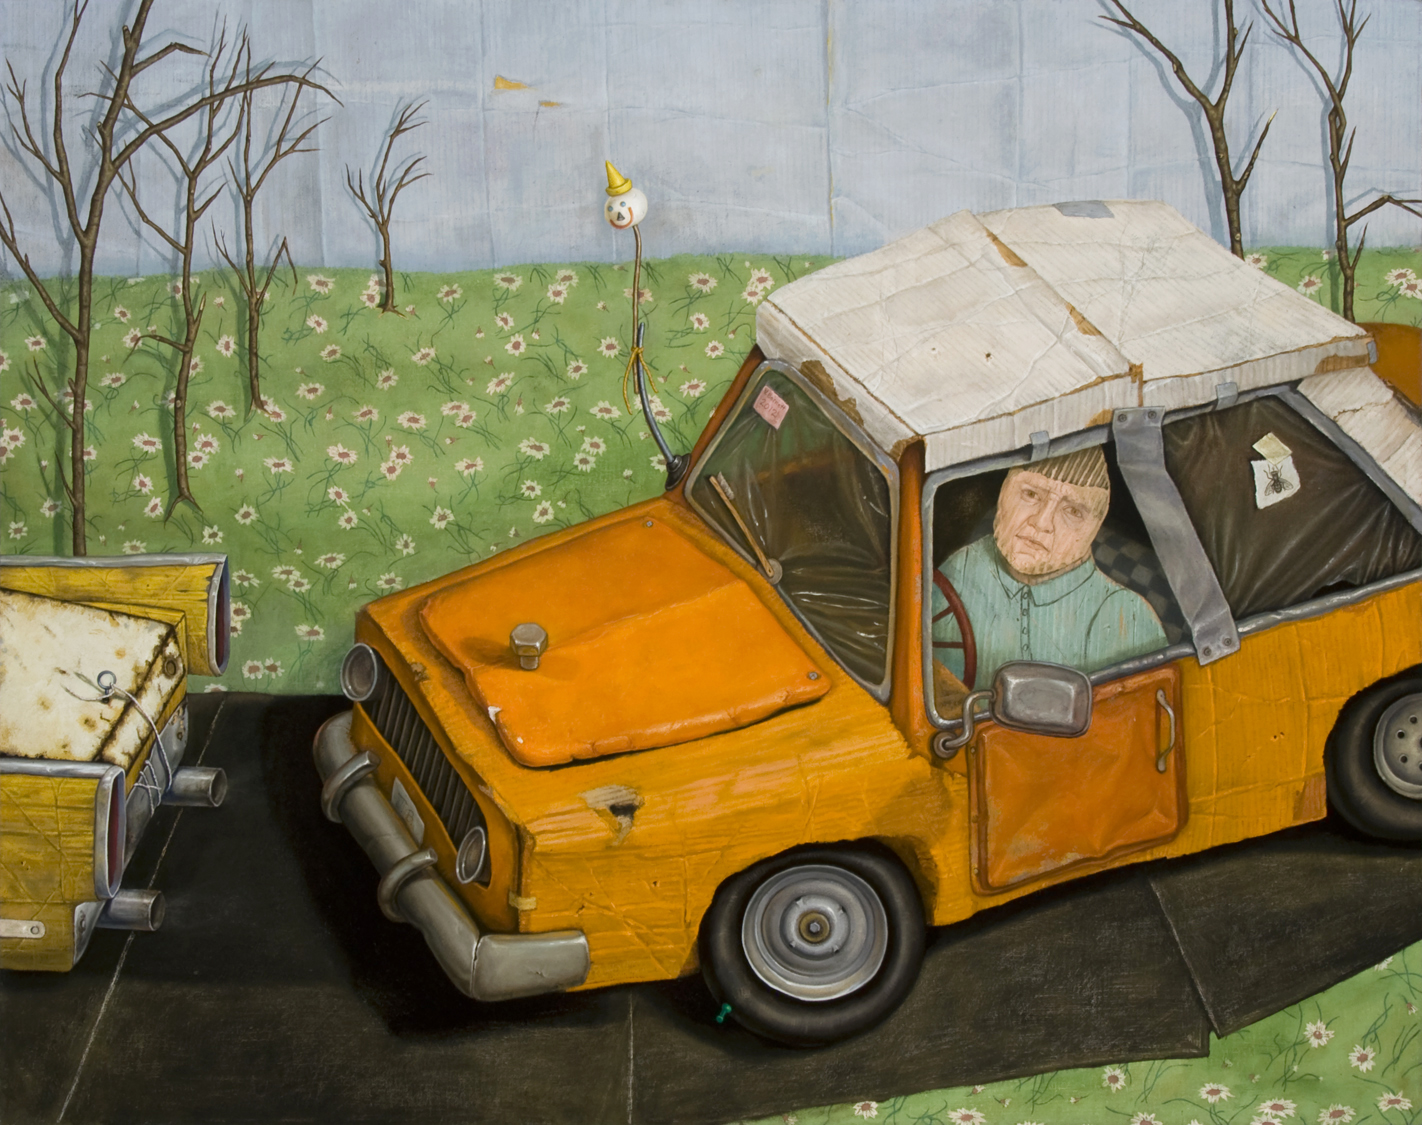 """The Painted Word: Idiot/Maniac, 2012, oil on linen, 38 x 48 inches, inspired by the quote """"Have you ever noticed that anybody driving slower than you is an idiot, and anyone going faster than you is a maniac?"""" —George Carlin"""